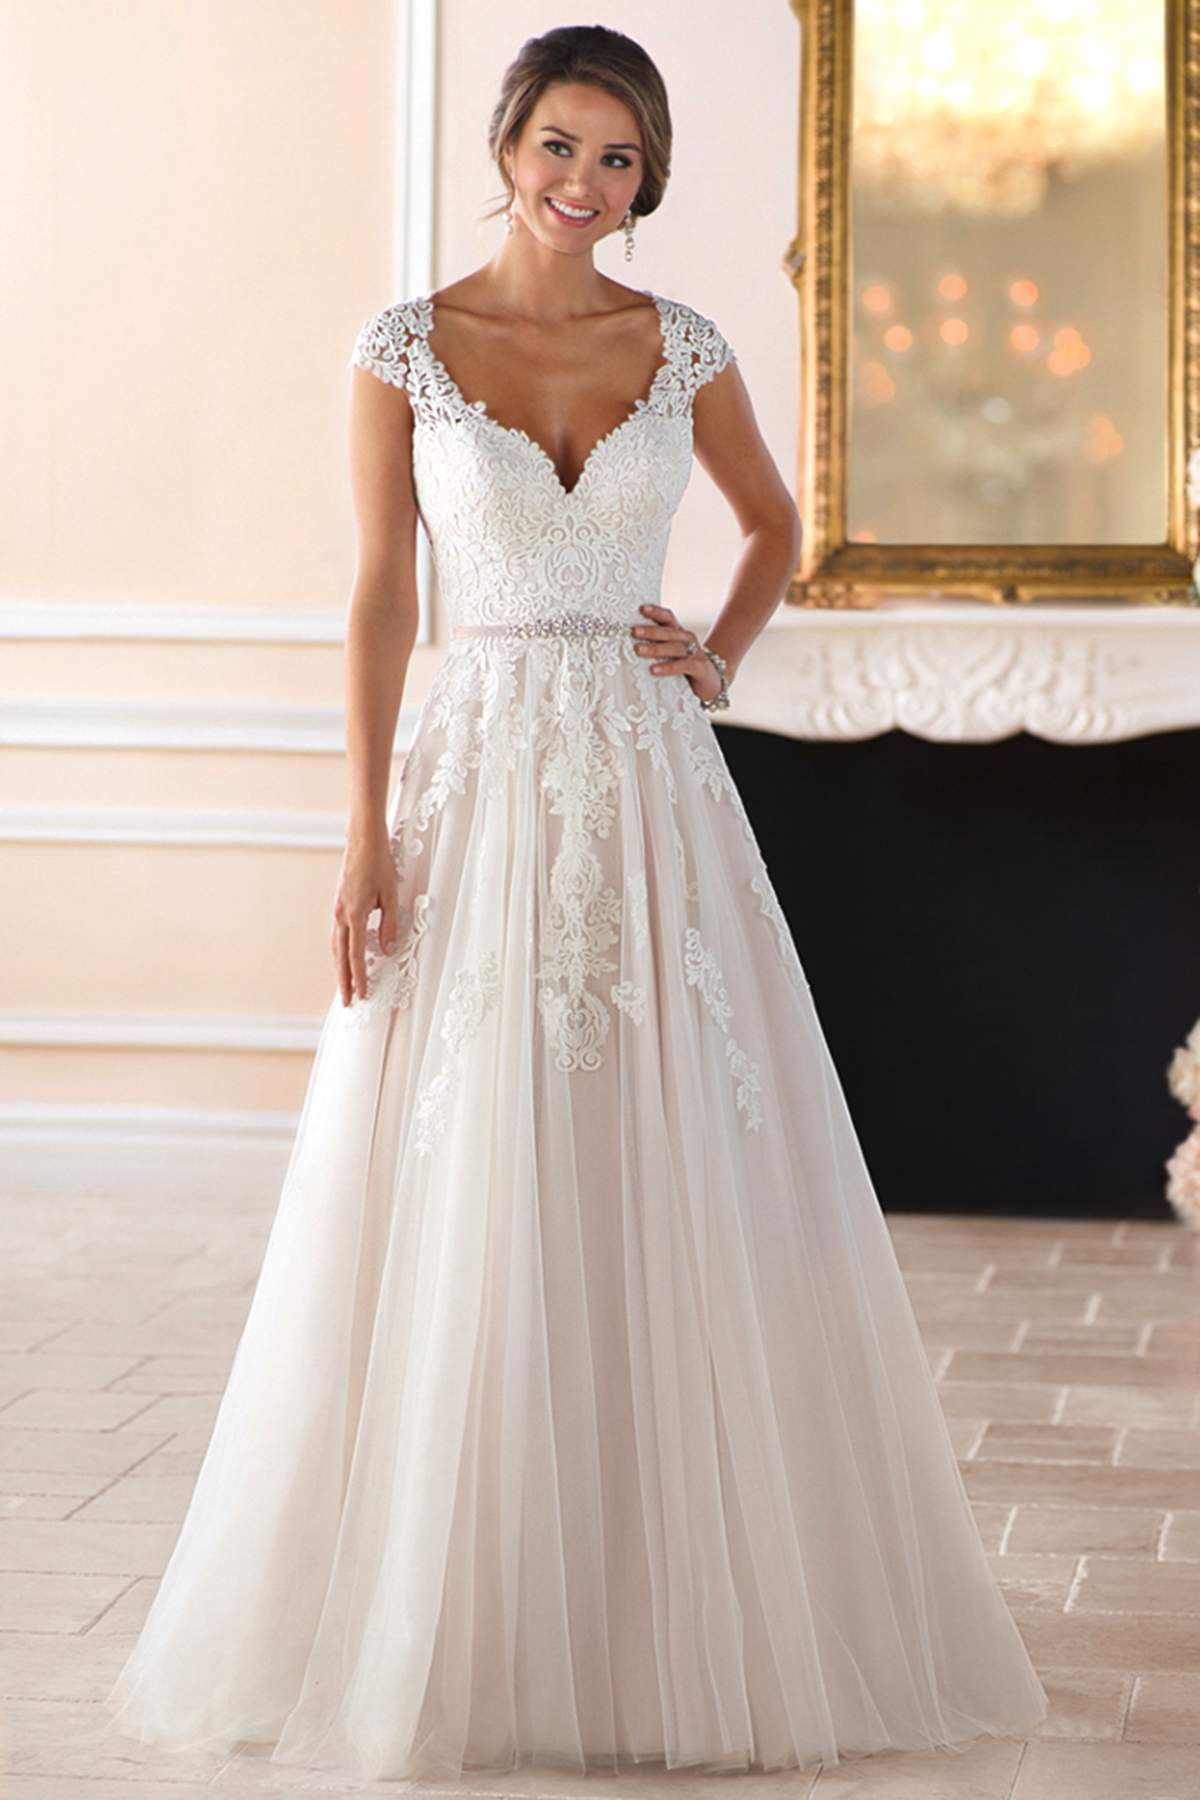 c39480c81a5d Style 6391 by Stella York - Find Your Dream Dress